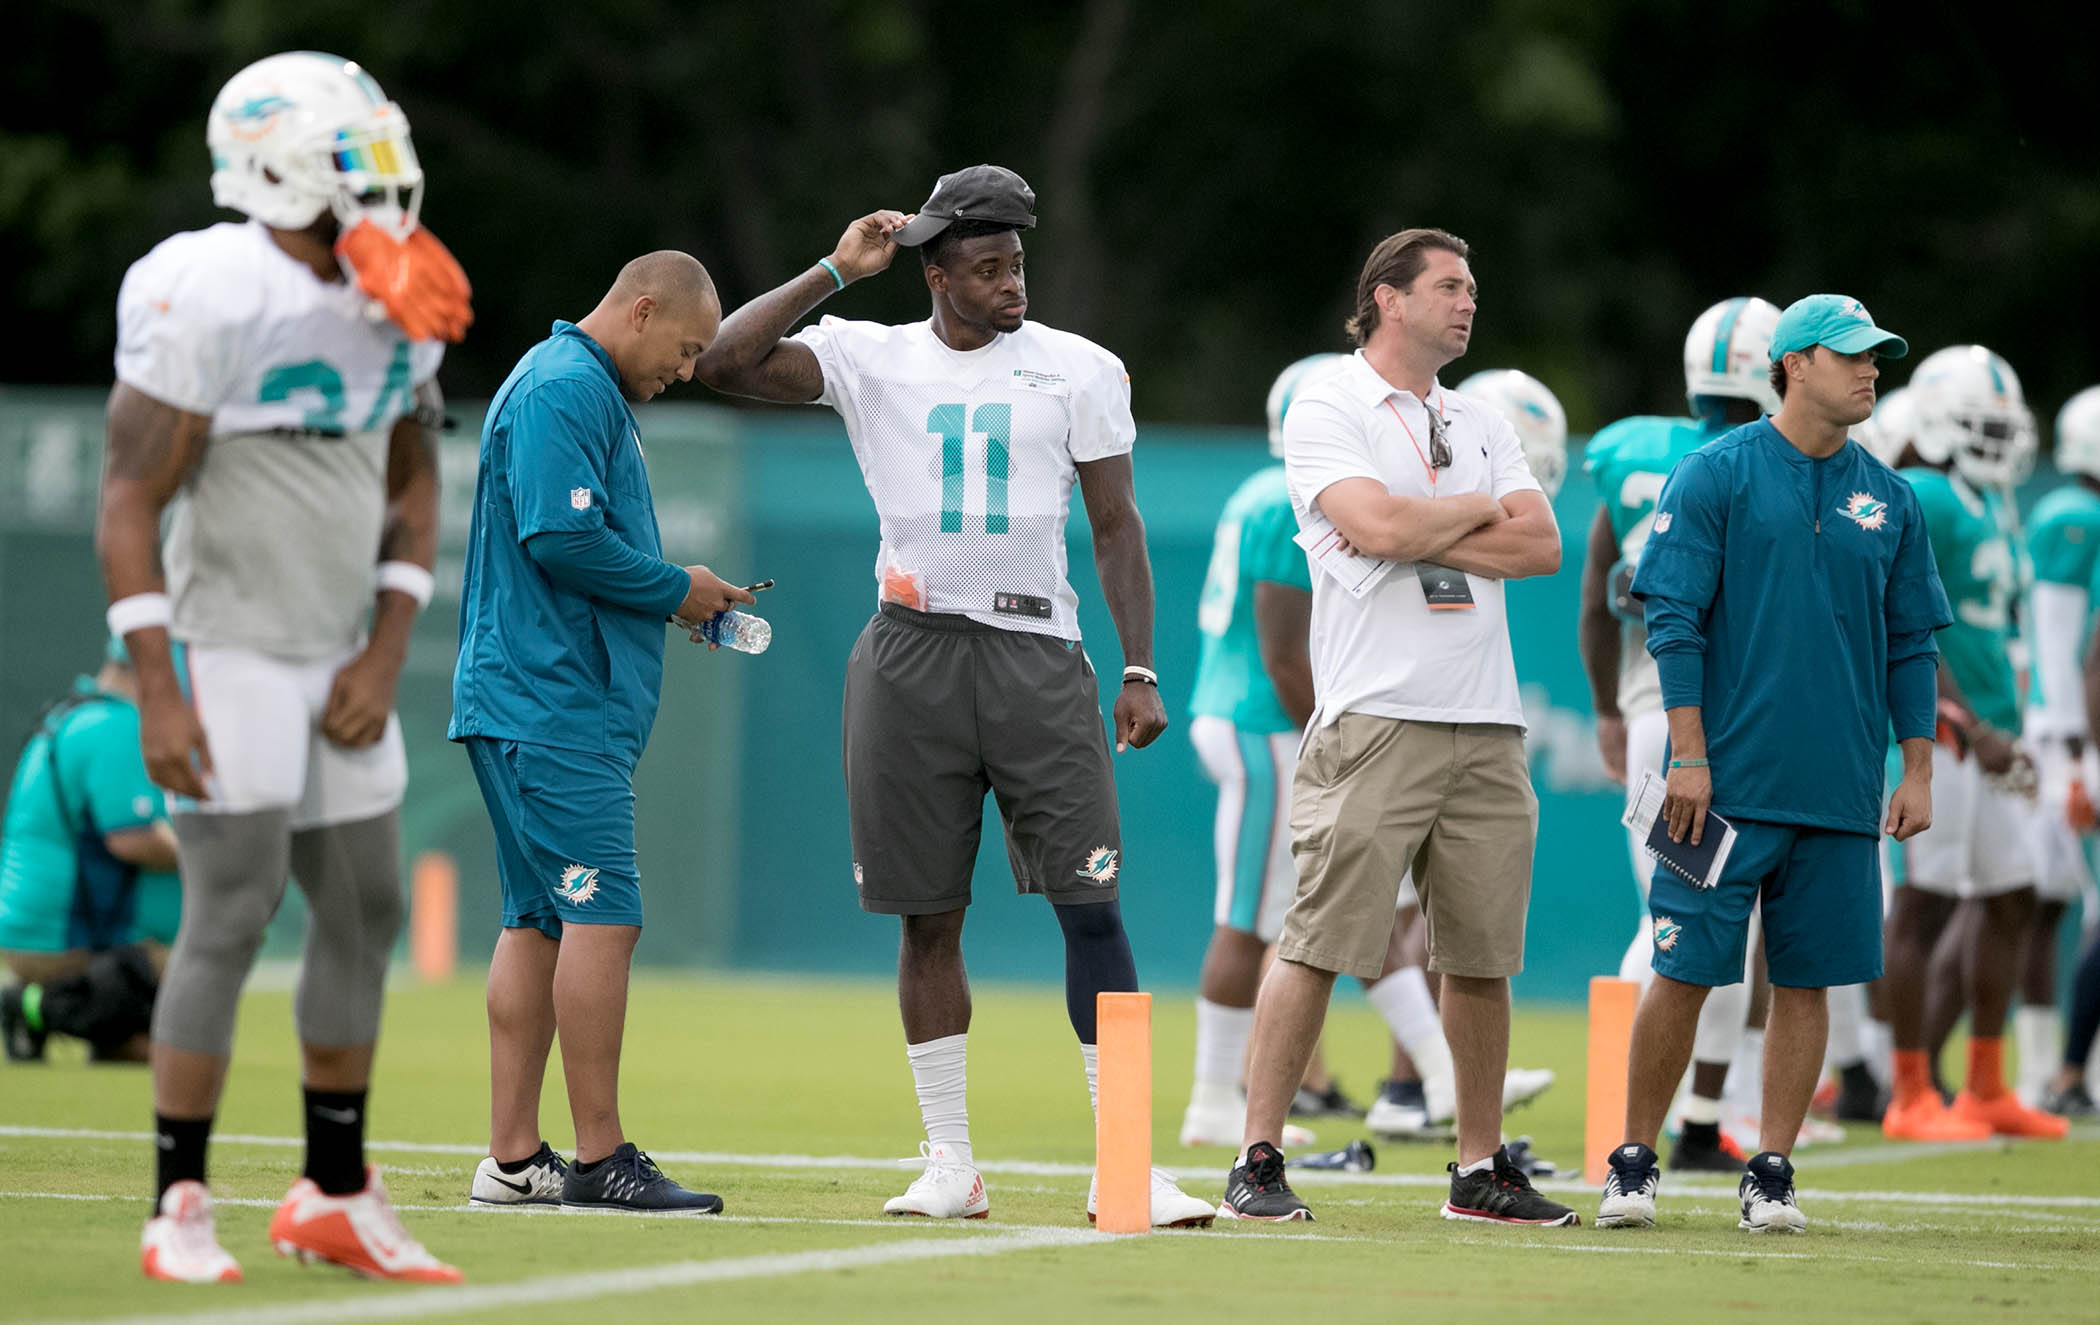 Despite some early bumps in the Dolphins Training Camp, Miami appears much improved